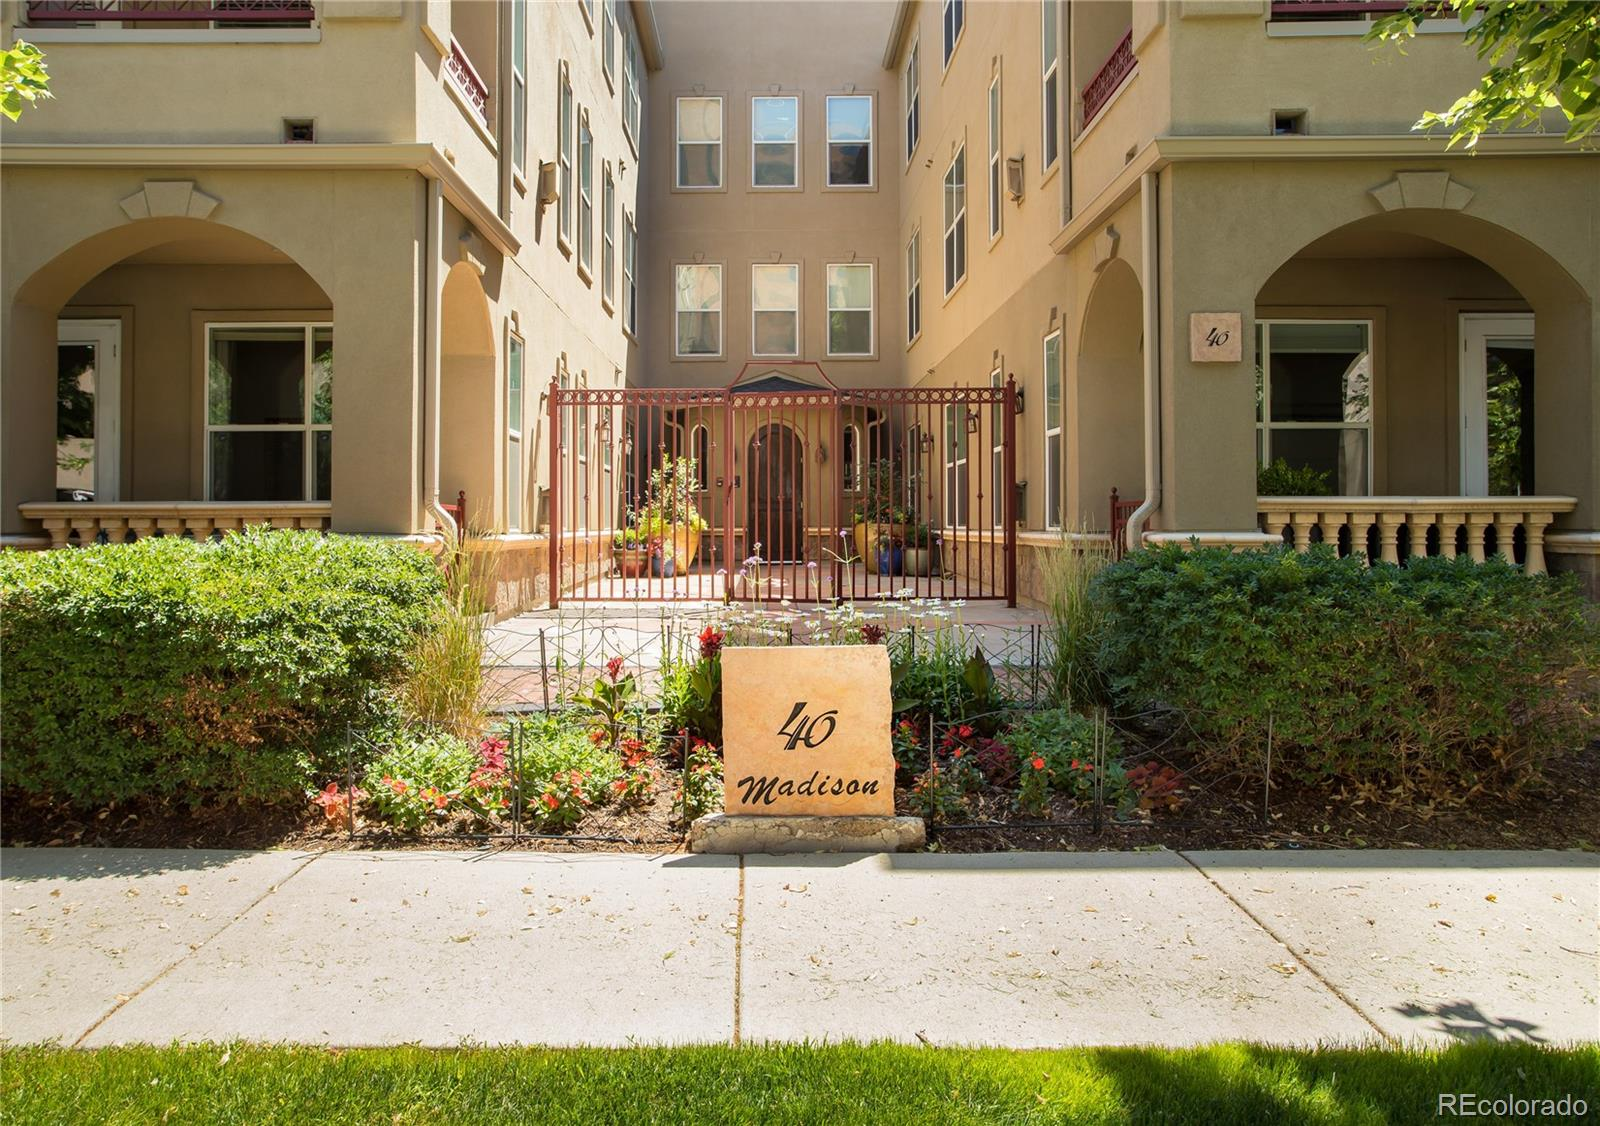 MLS# 3445243 - 3 - 40 Madison Street #303, Denver, CO 80206